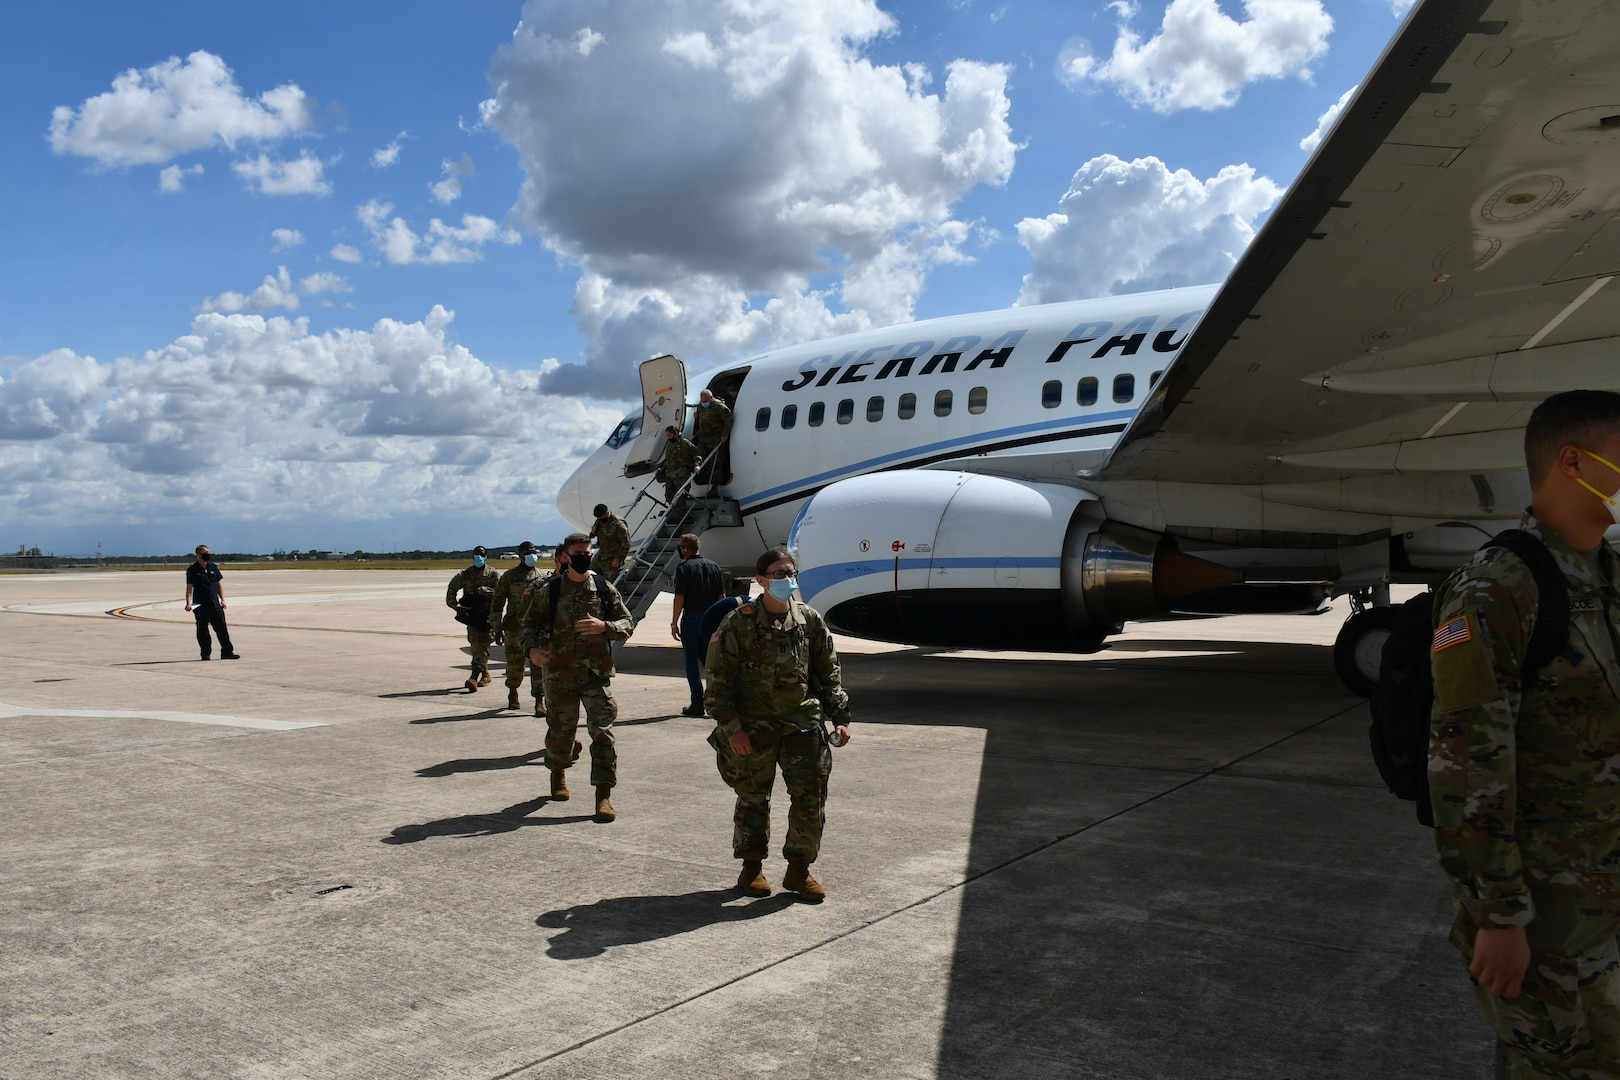 Soldier getting off airplane.